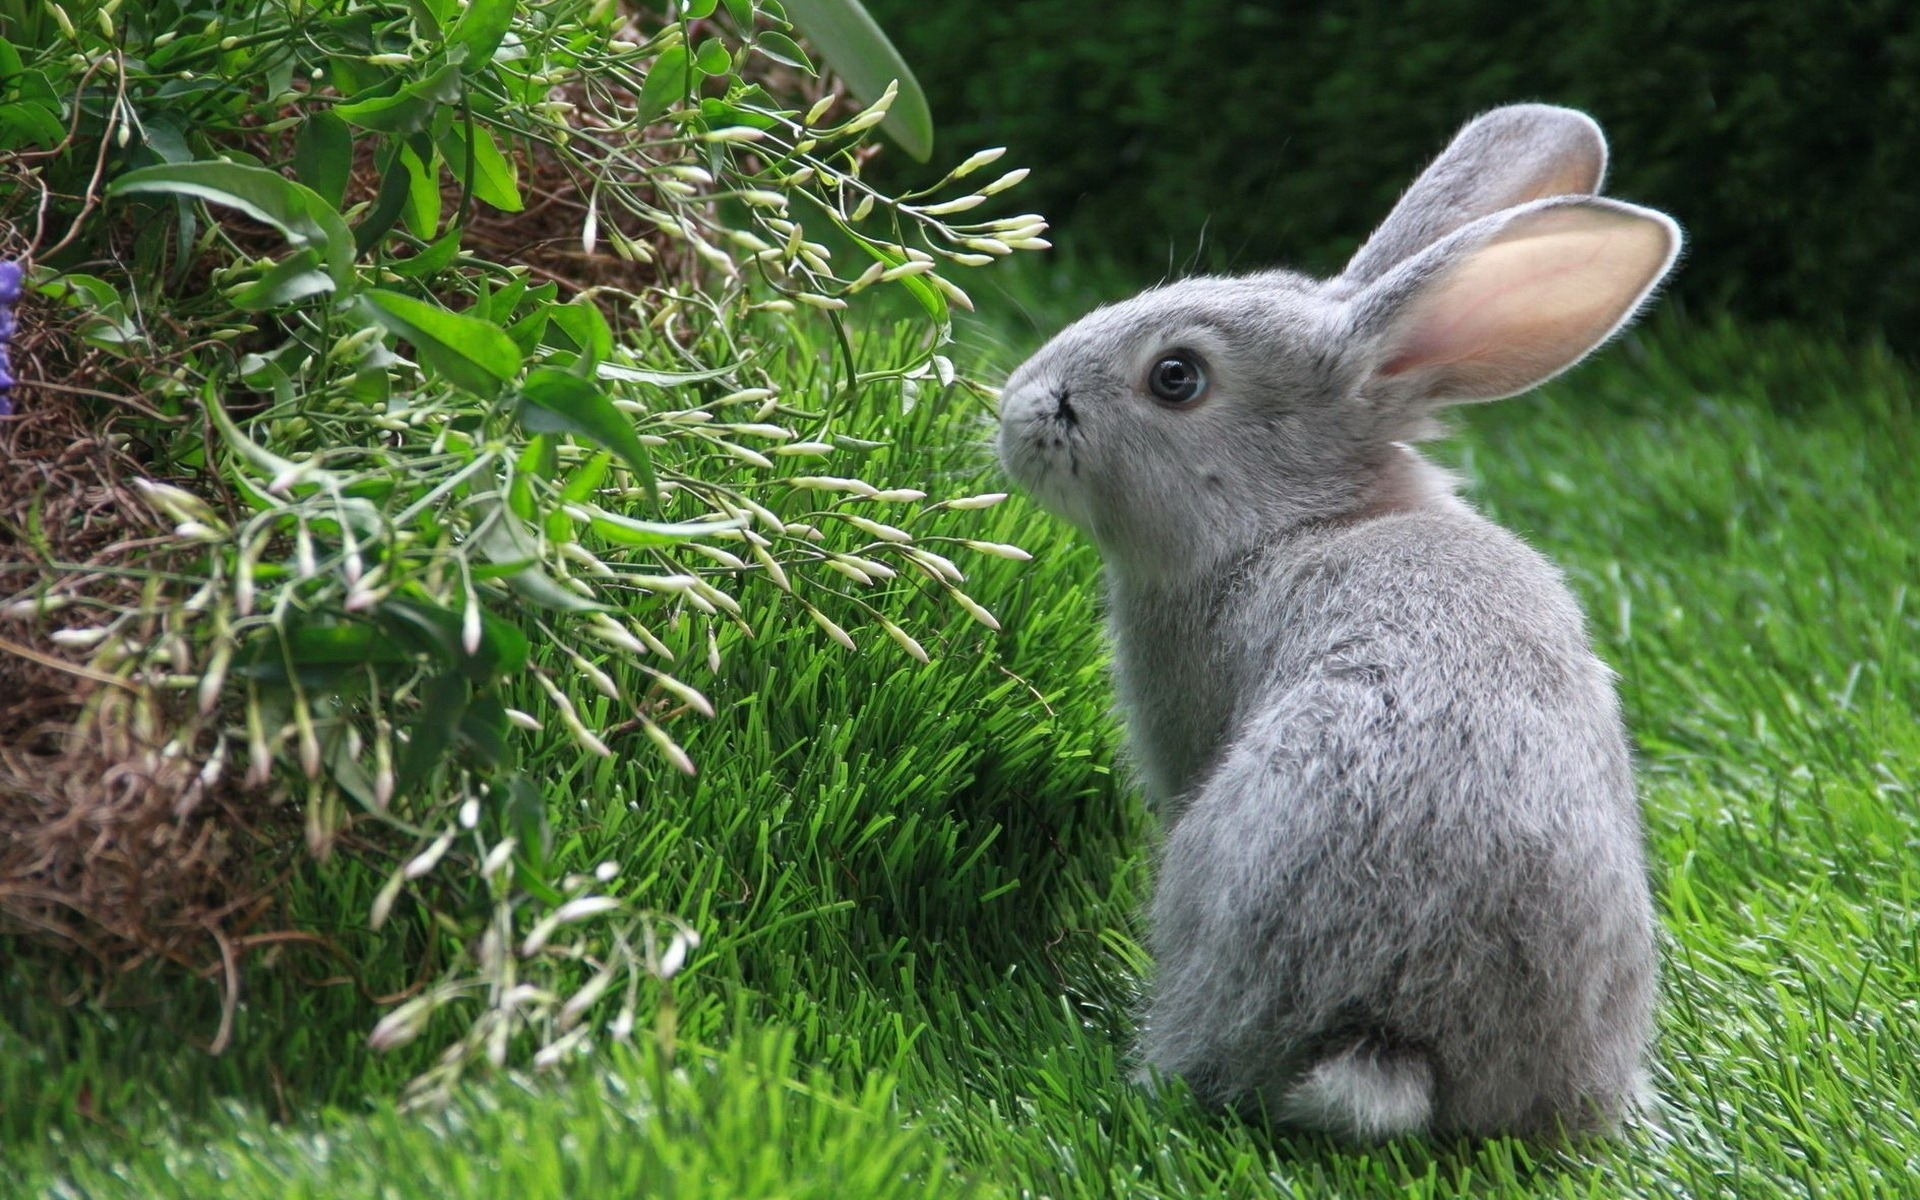 43420 download wallpaper Animals, Rabbits screensavers and pictures for free